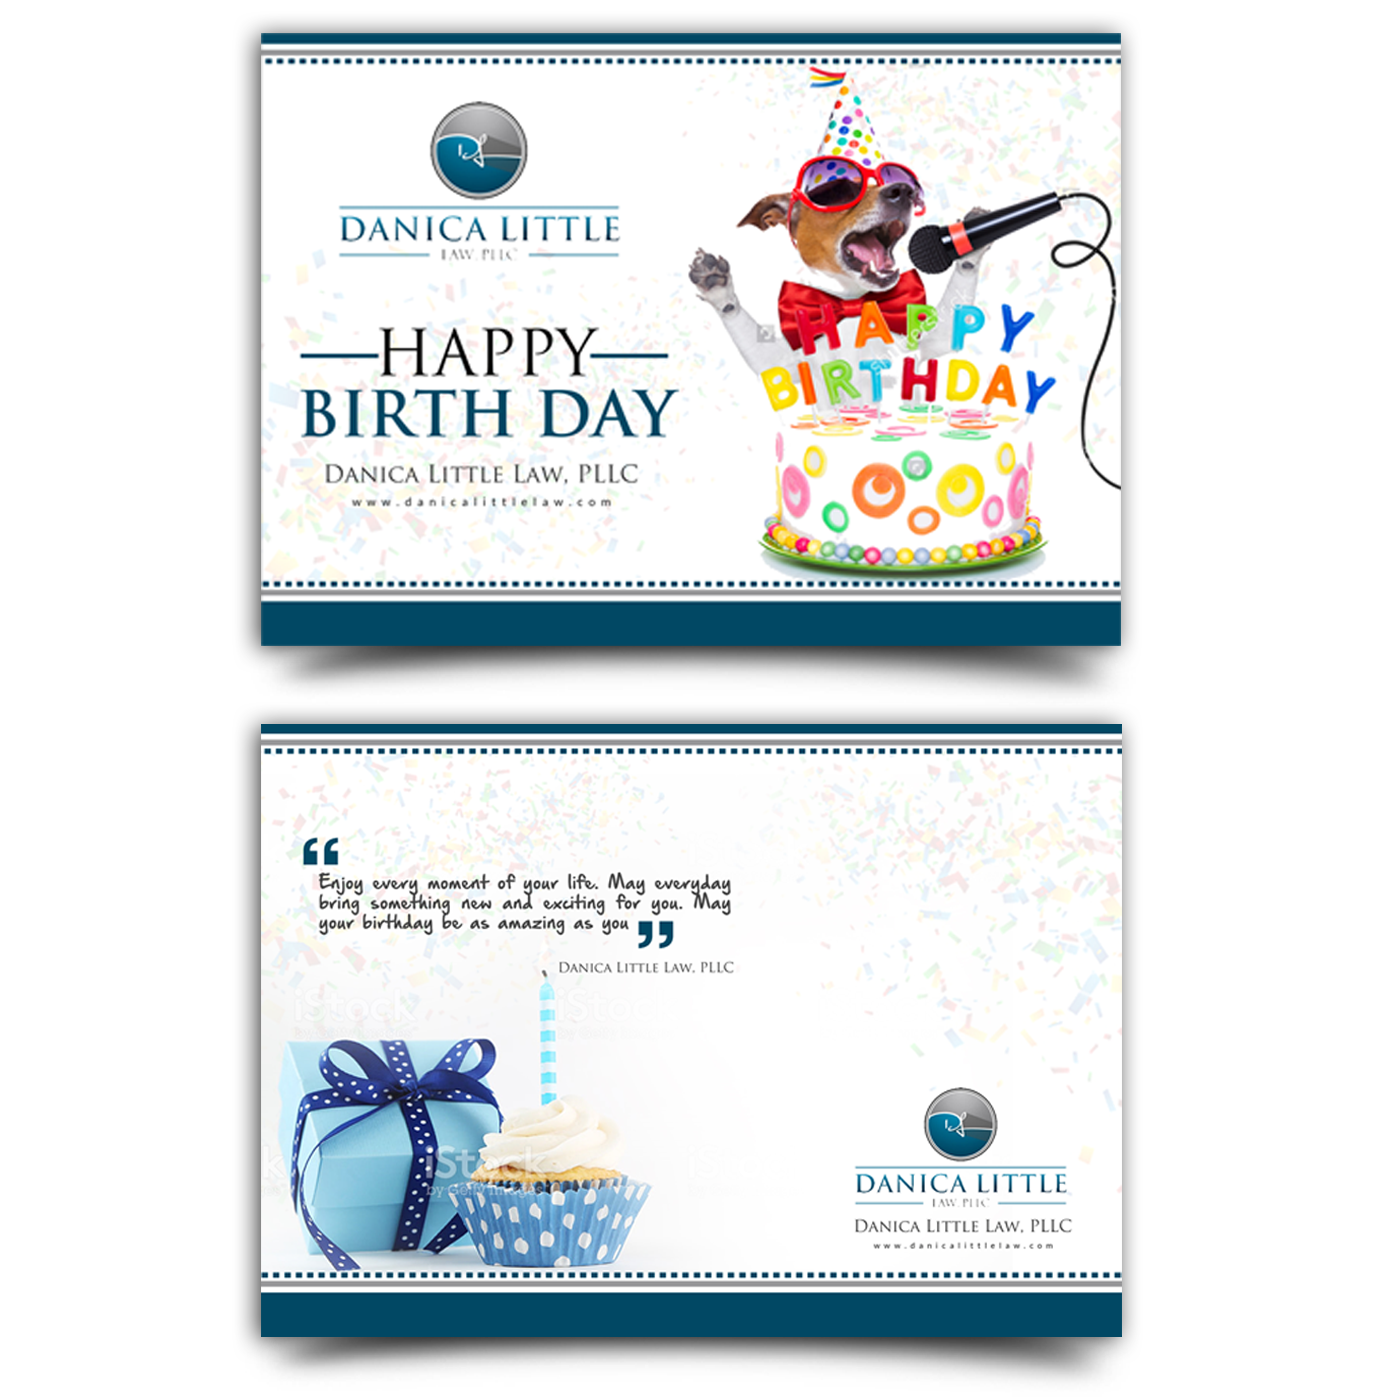 Greeting Card Design By Creativebugs For Danica Little Law PLLC